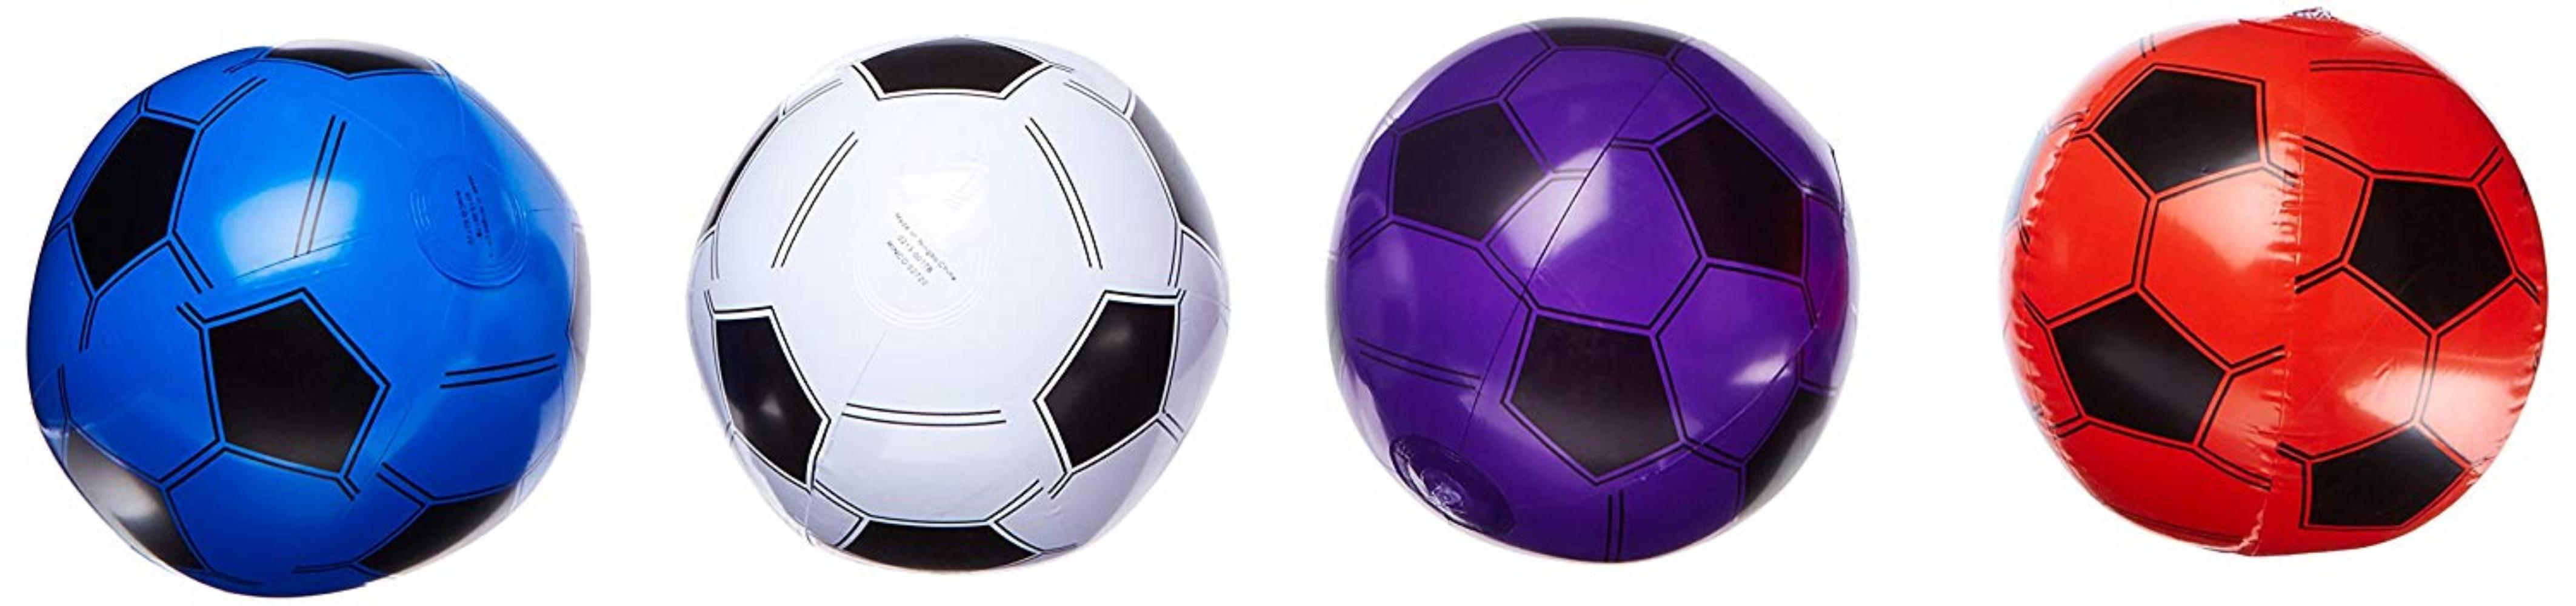 5STARS N&R 12 Inflatable Soccer Balls Soccer Ball Inflates 16'' Assorted Colors, 12... by